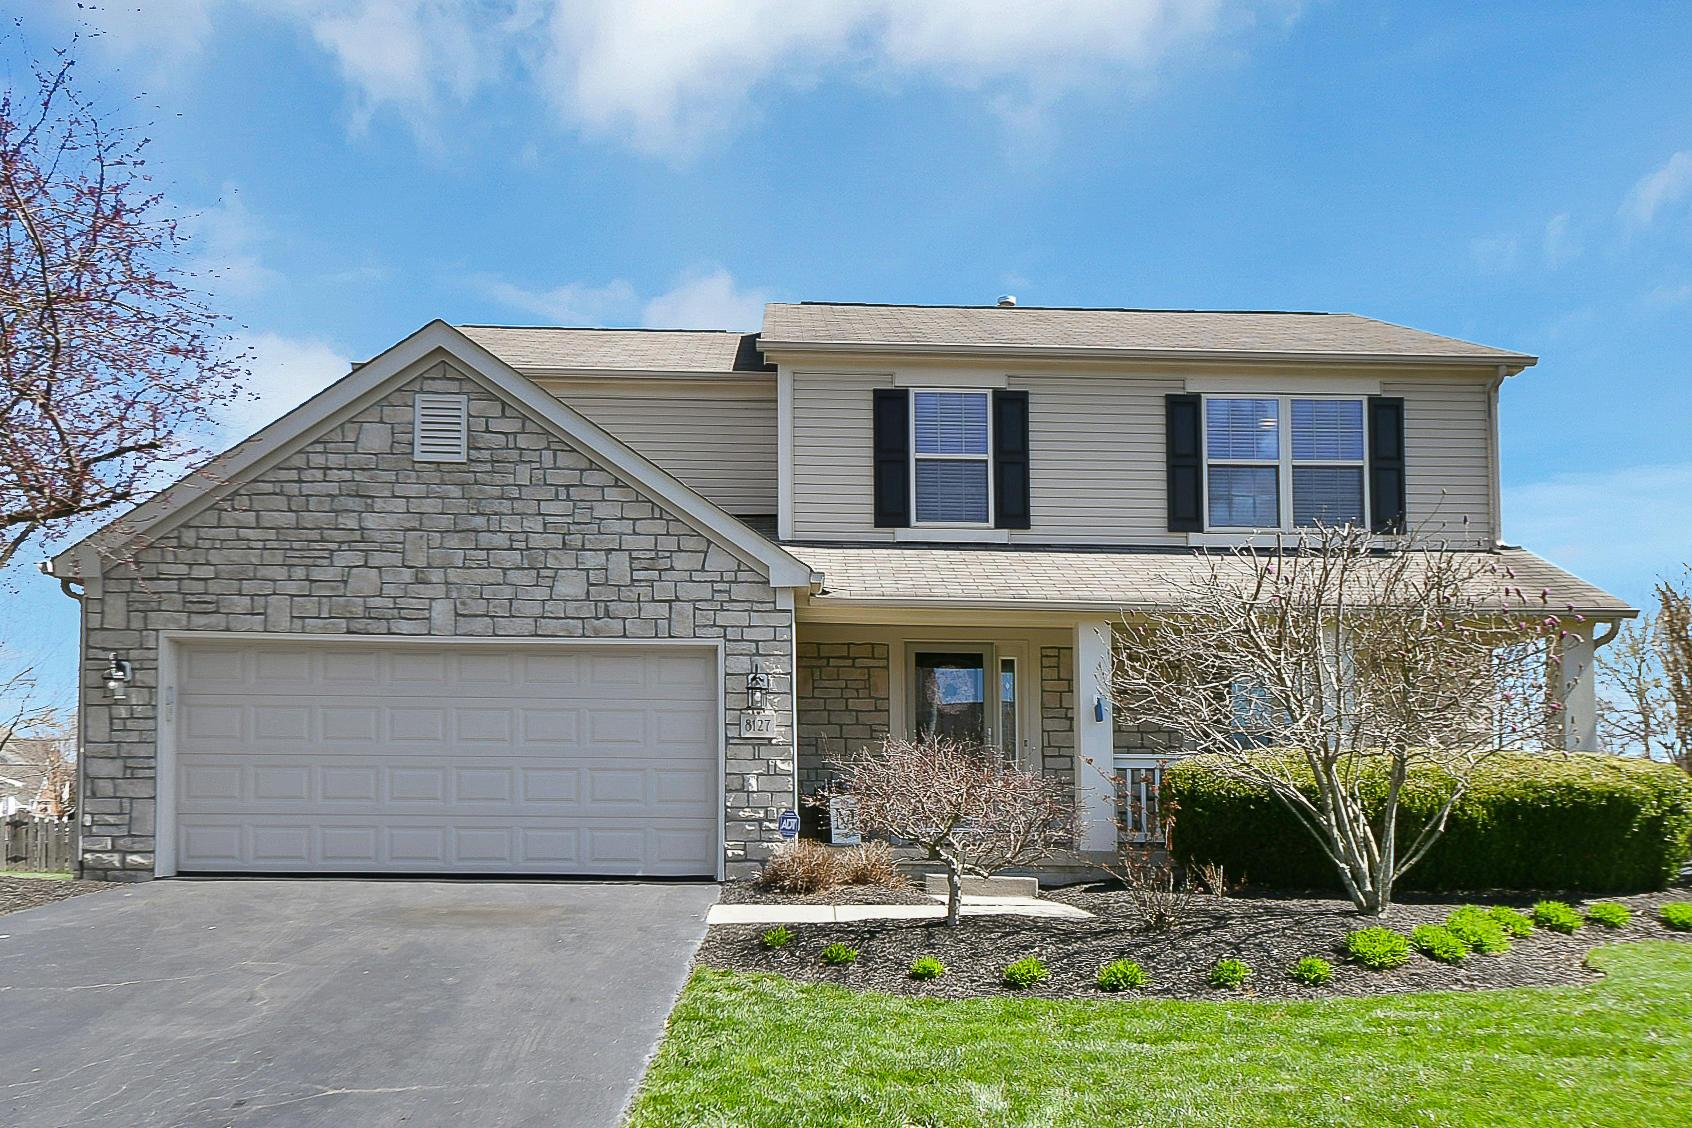 Photo of 8127 Coldharbor Boulevard, Lewis Center, OH 43035